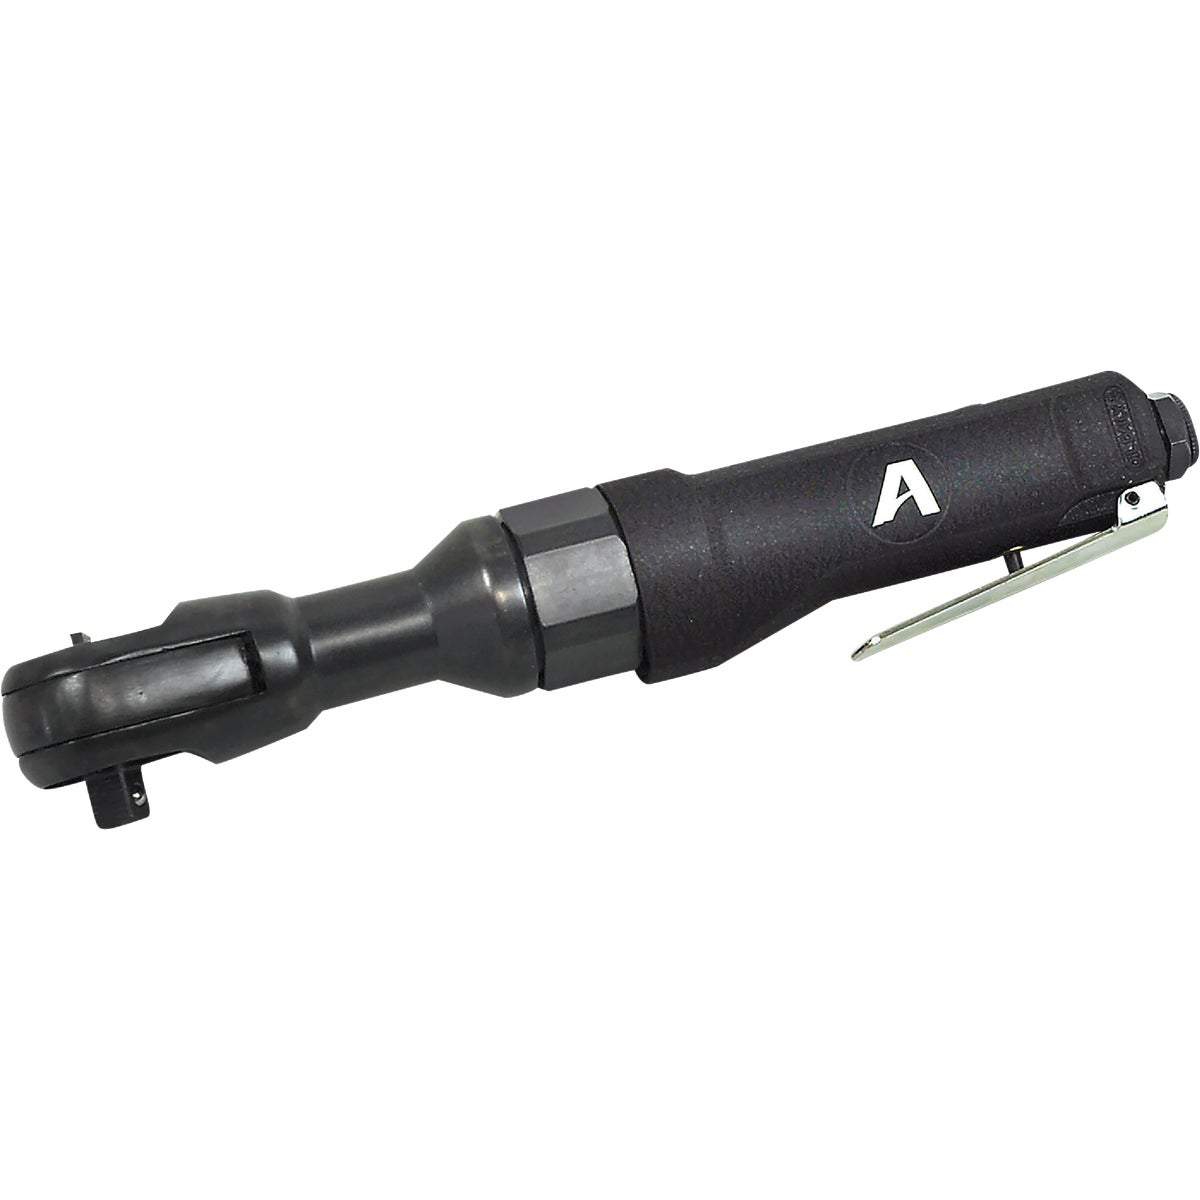 3/8 AIR RATCHET - 802R by Aircat Pneumatic Tools